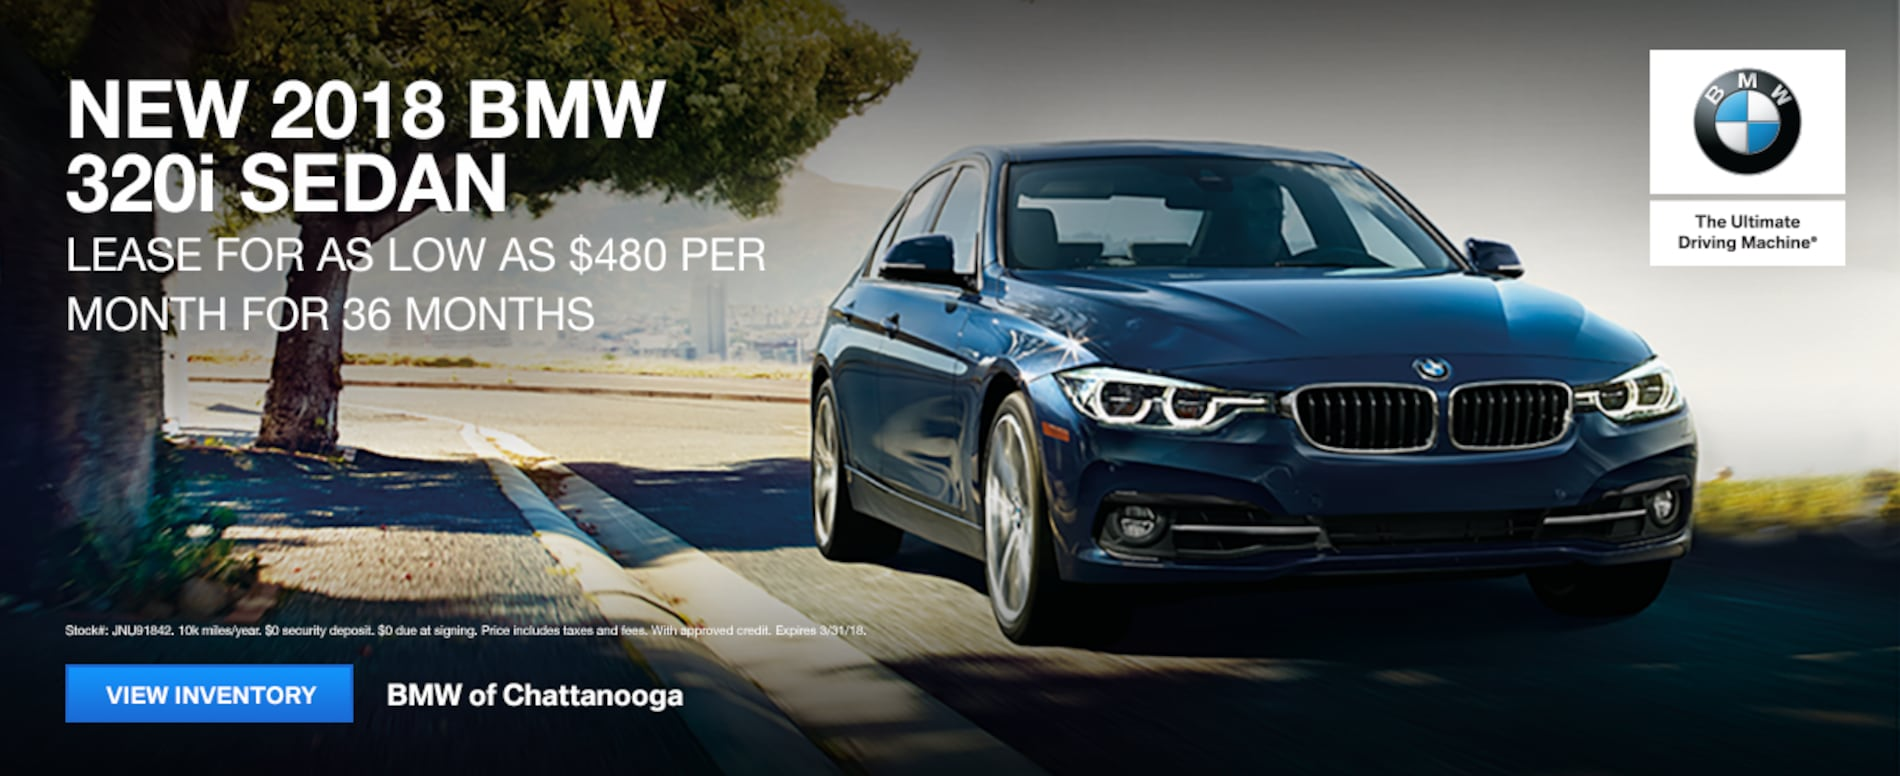 BMW of Chattanooga | Used BMW Cars | Chattanooga & Memphis TN